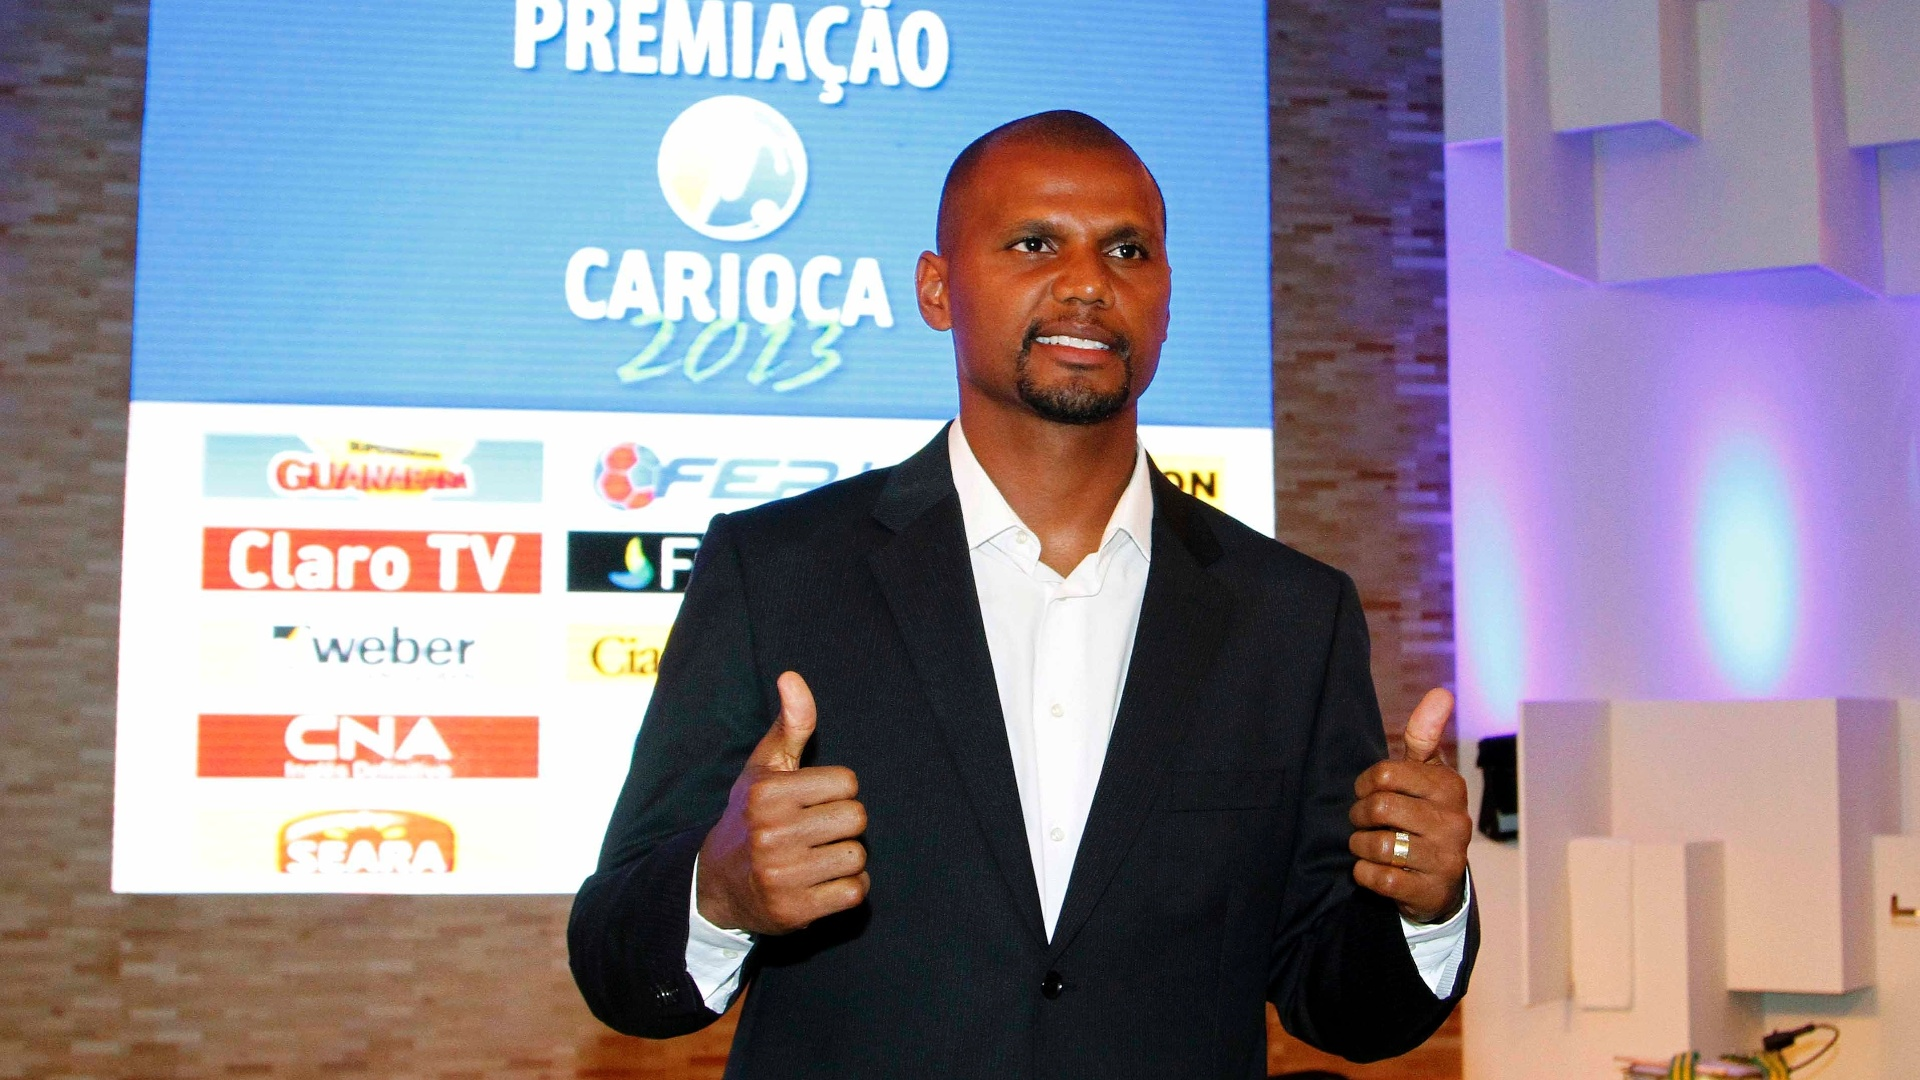 20.mai.2013 - Campeo carioca pelo Botafogo, o goleiro Jefferson chega  festa de premiao do torneio e acena para os fotgrafos